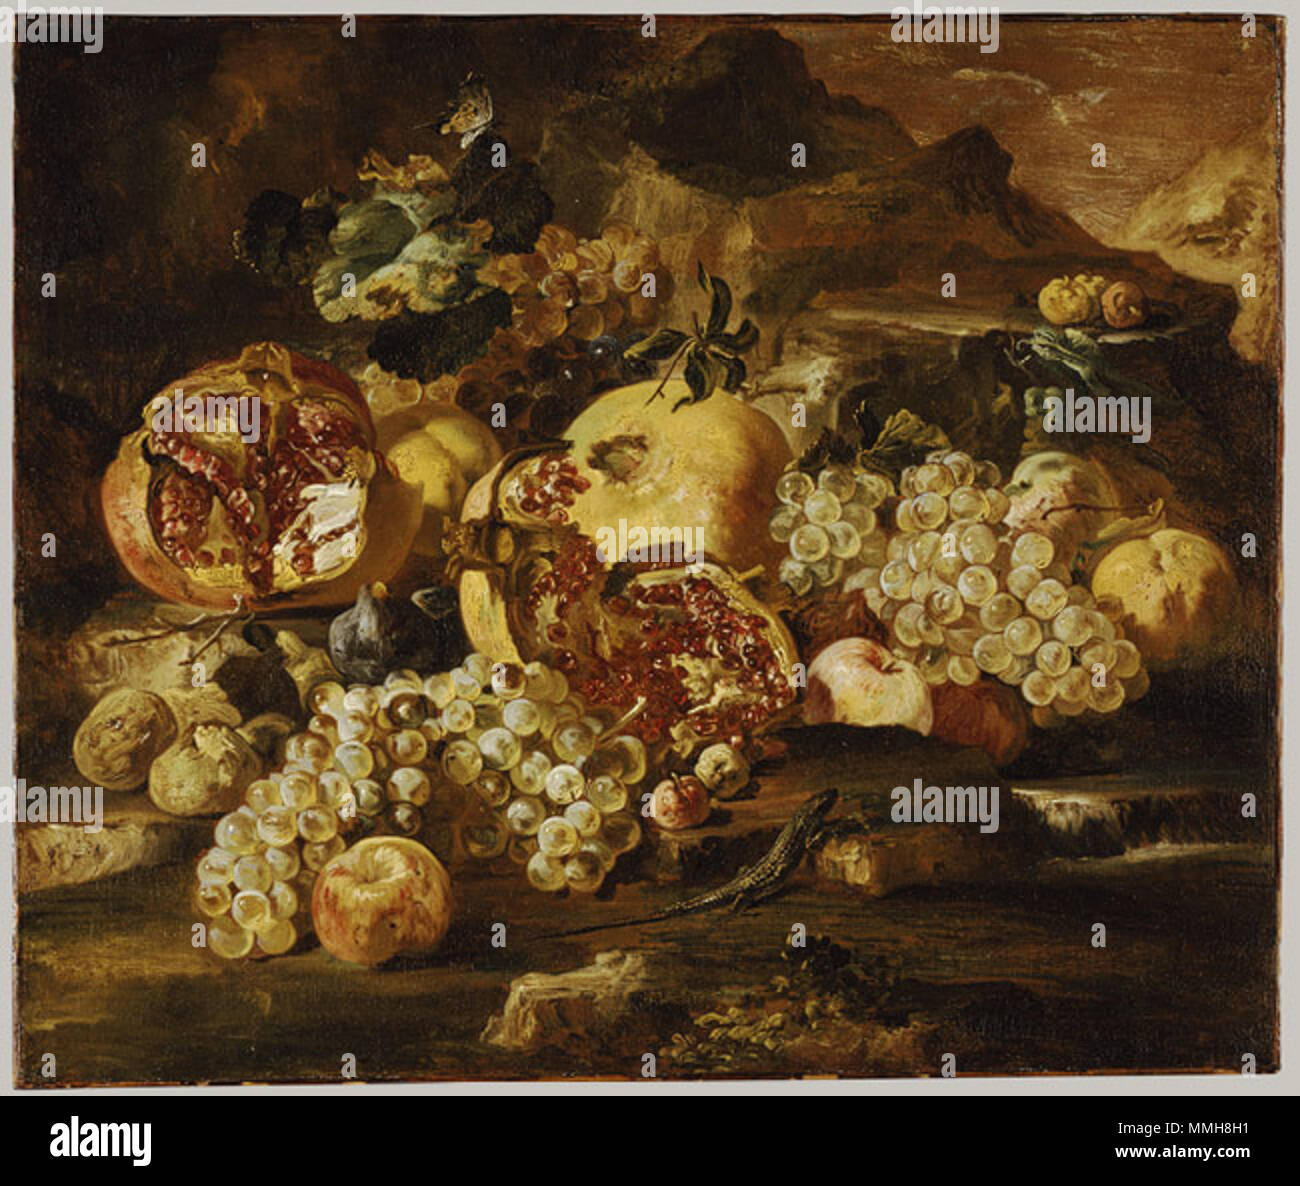 Working Title/Artist: Abraham Brueghel:  Pomegranates and other fruit in a landscape Department: European Paintings Culture/Period/Location:  HB/TOA Date Code:  Working Date:  photography by mma 2003, transparency 7B, 8x10 front scanned and retouched by film and media (jnc) 10 15 07 Abraham Brueghel - Pomegranates and Other Fruit in a Landscape - Stock Image